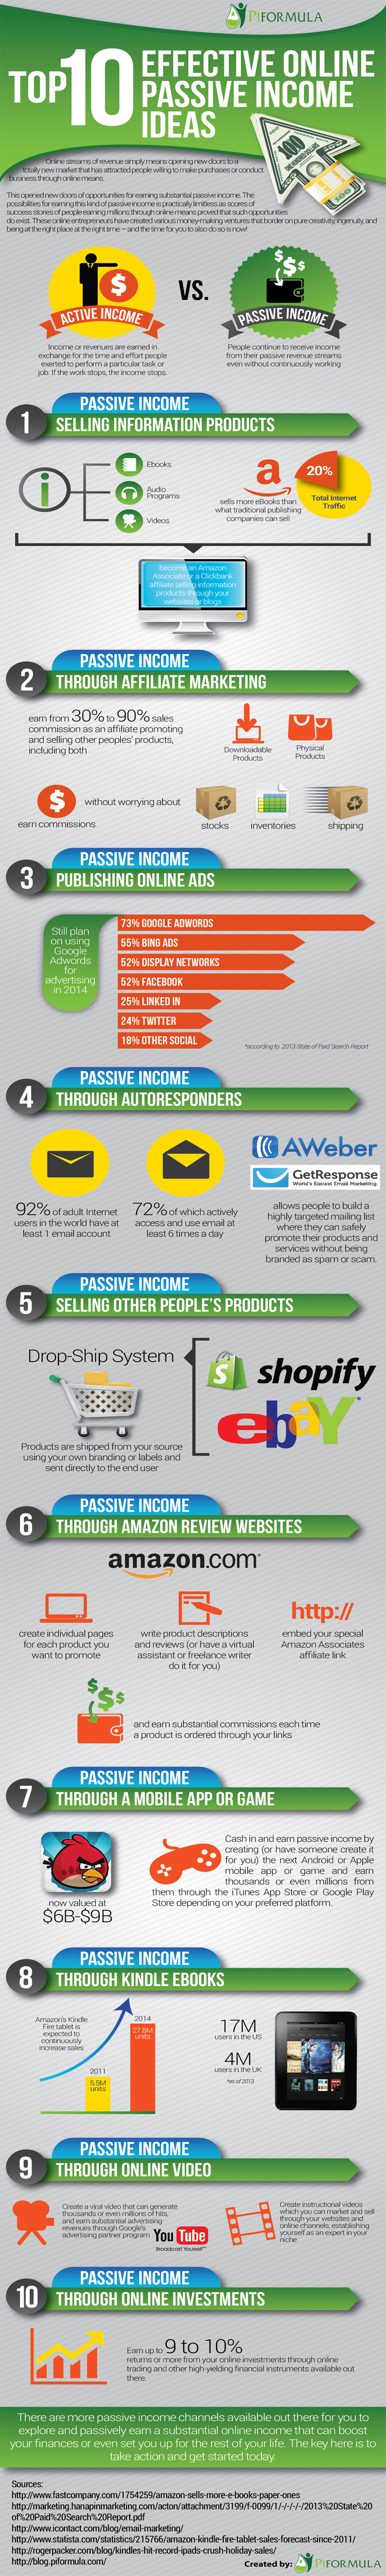 Top 10 Effective Online Passive Income Ideas [Infographic]